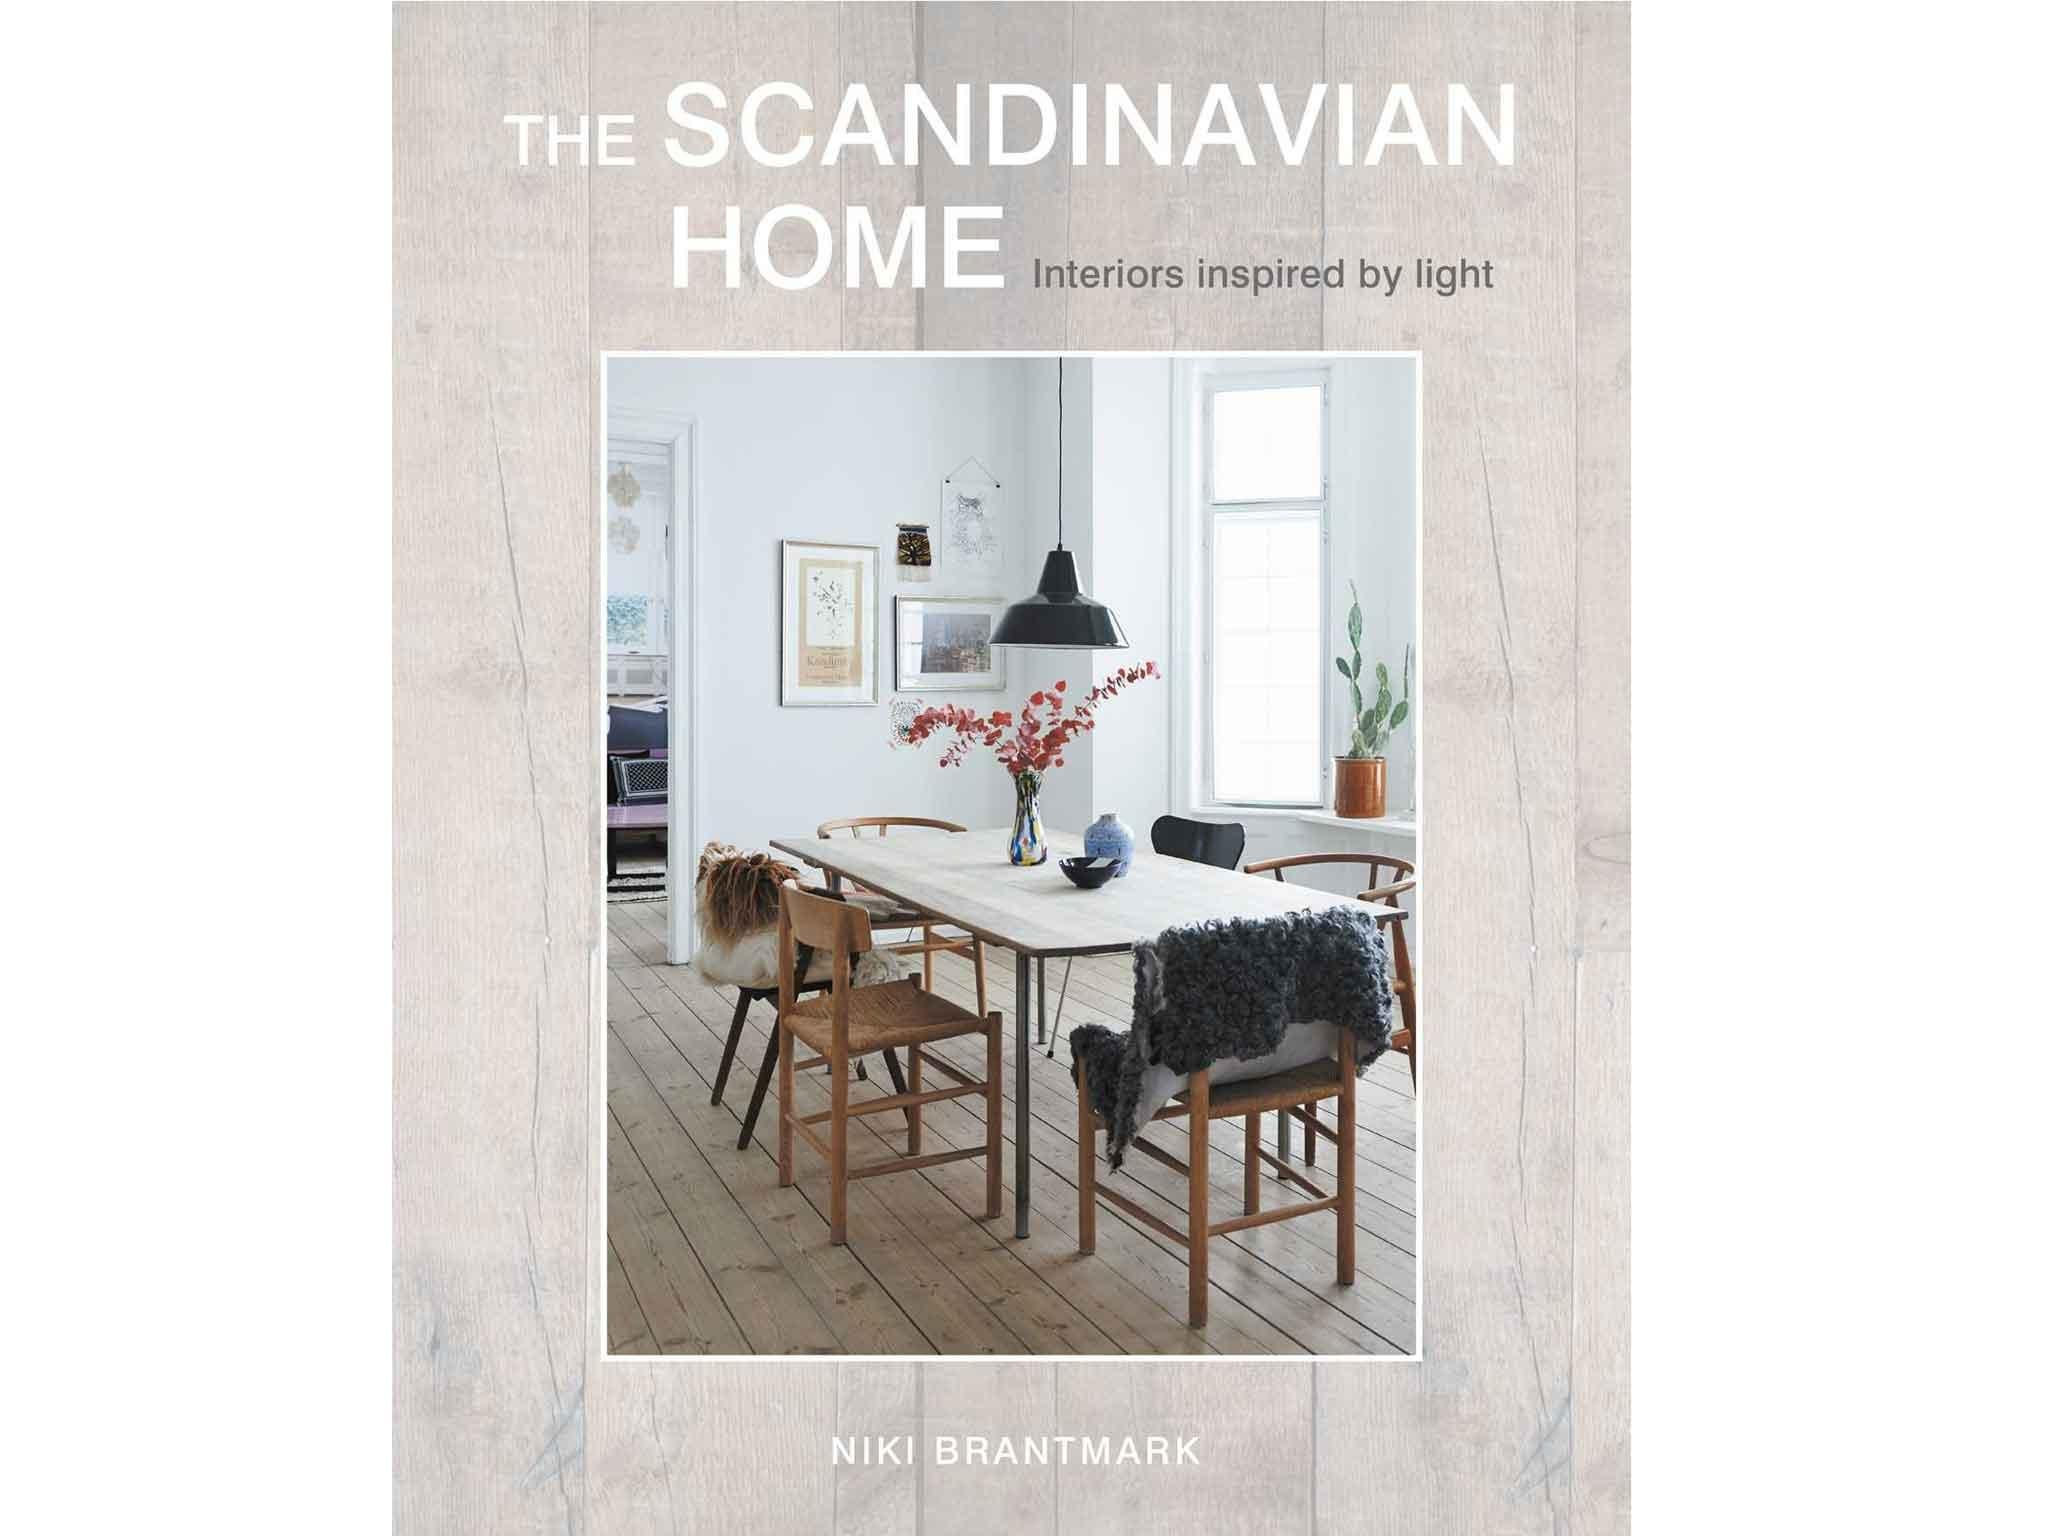 10 Best Interior Design Books The Independent Color Coding Your Circuit Breaker Box First Home Love Life Scandinavian Interiors Inspired By Light Niki Brantmark 1999 Ryland Peters Small